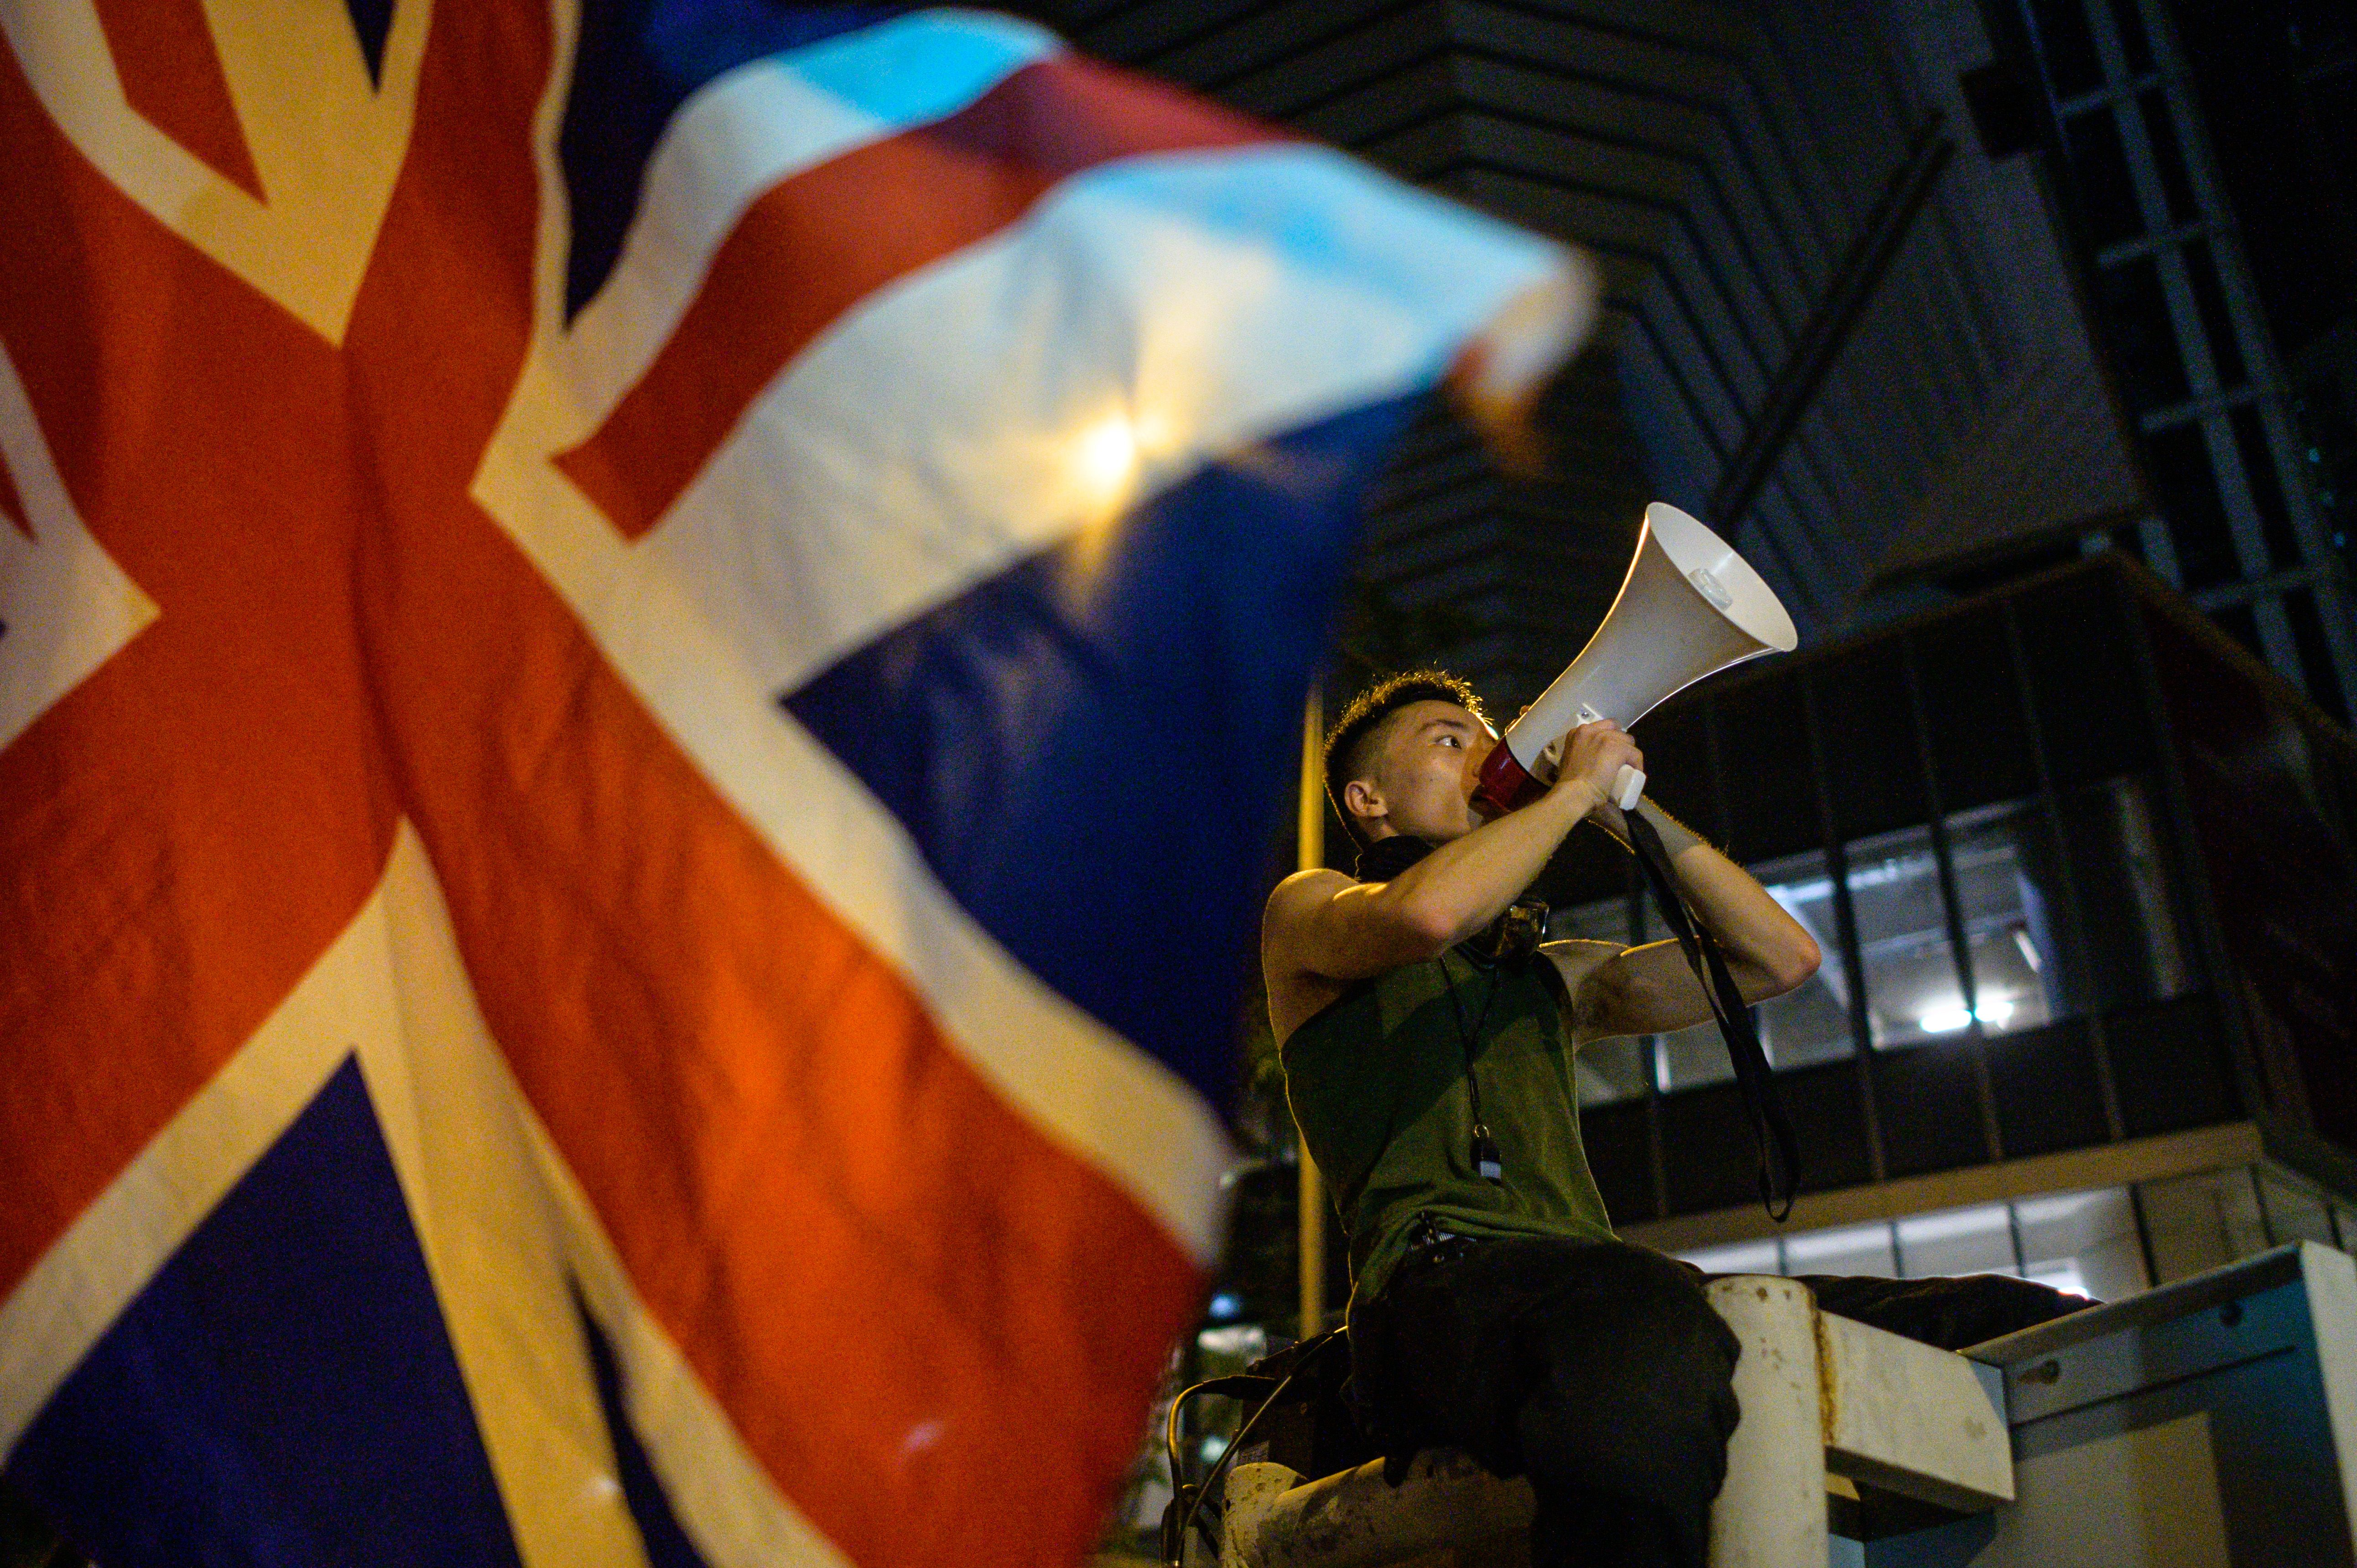 A British Union Jack flag is waved from the ground as a protester uses a loud hailer to speak outside the police headquarters in Hong Kong, early on June 27, 2019.